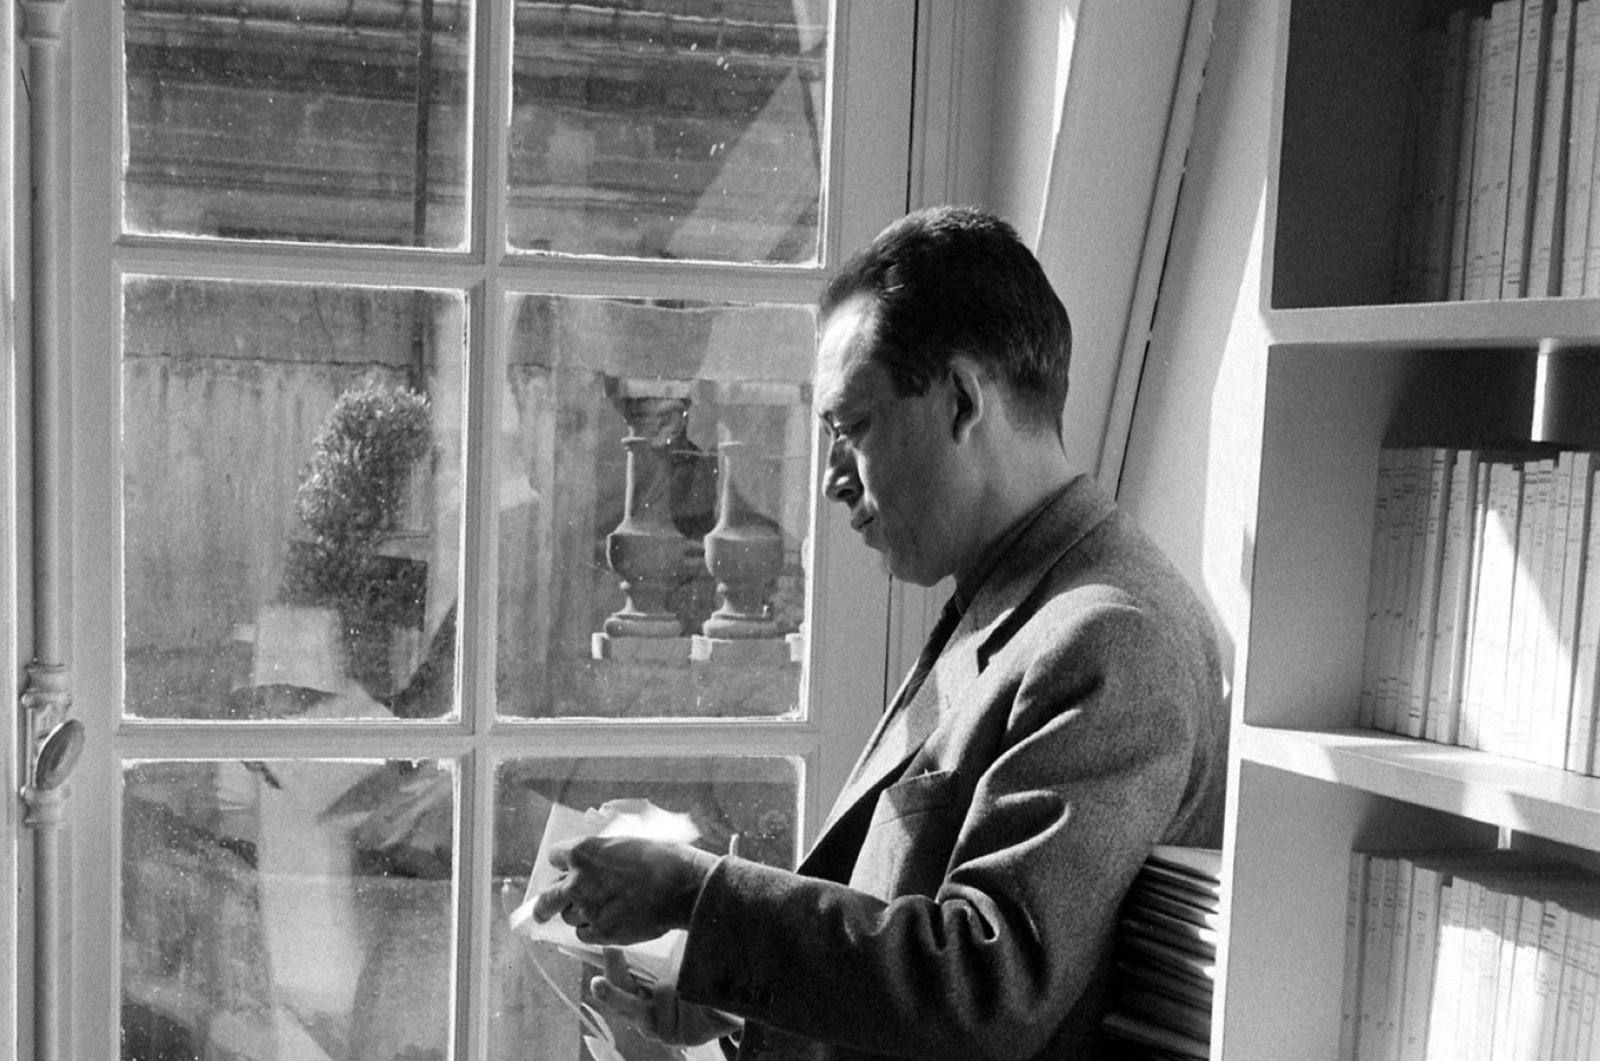 French writer Albert Camus reads outside his publishing firm's office, Paris, 1957.